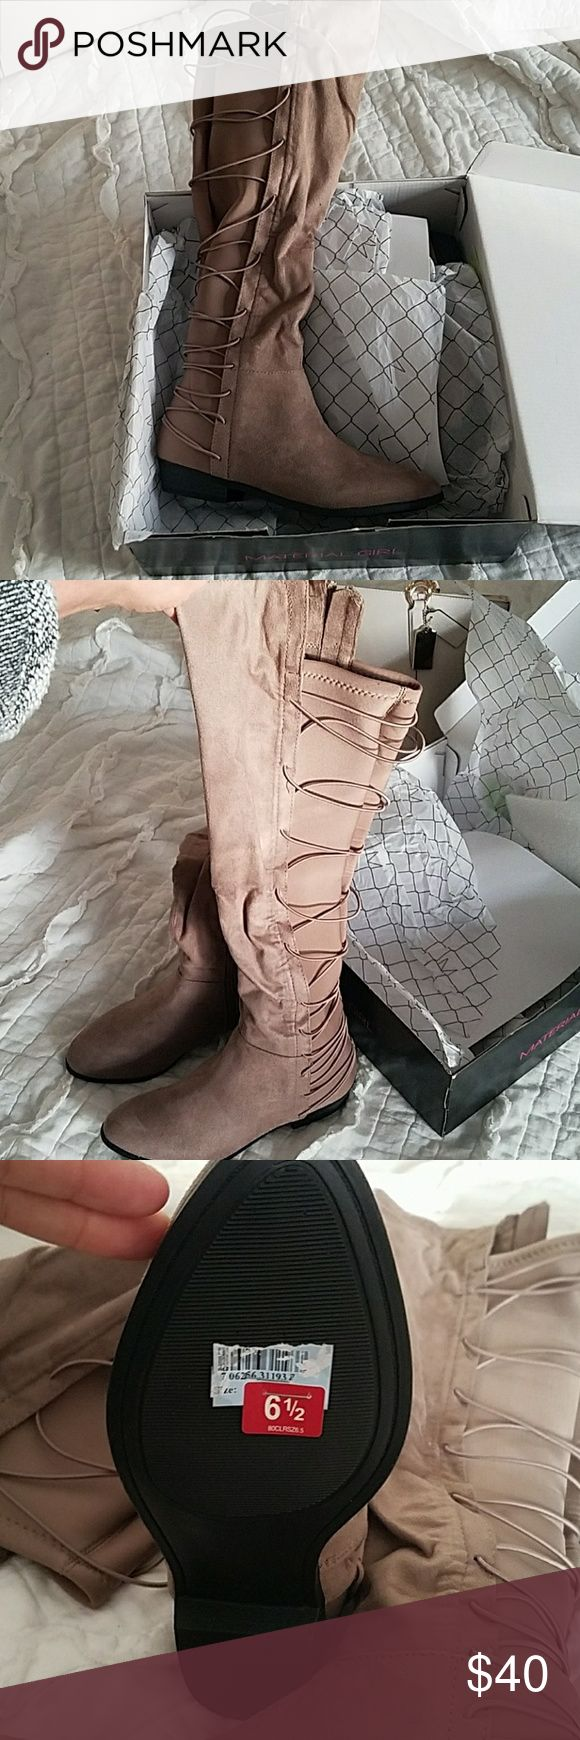 BNWT! GORGEOUS laced up boots in the back! BNWT! GORGEOUS laced up boots in the back! Sued lime material. Never WORN! Srill in box! Comes just up to knees. I wish these fit me.  They are a friends and I'm an 8.  Take advantage of this awesome deal!! Material Girl Shoes Over the Knee Boots